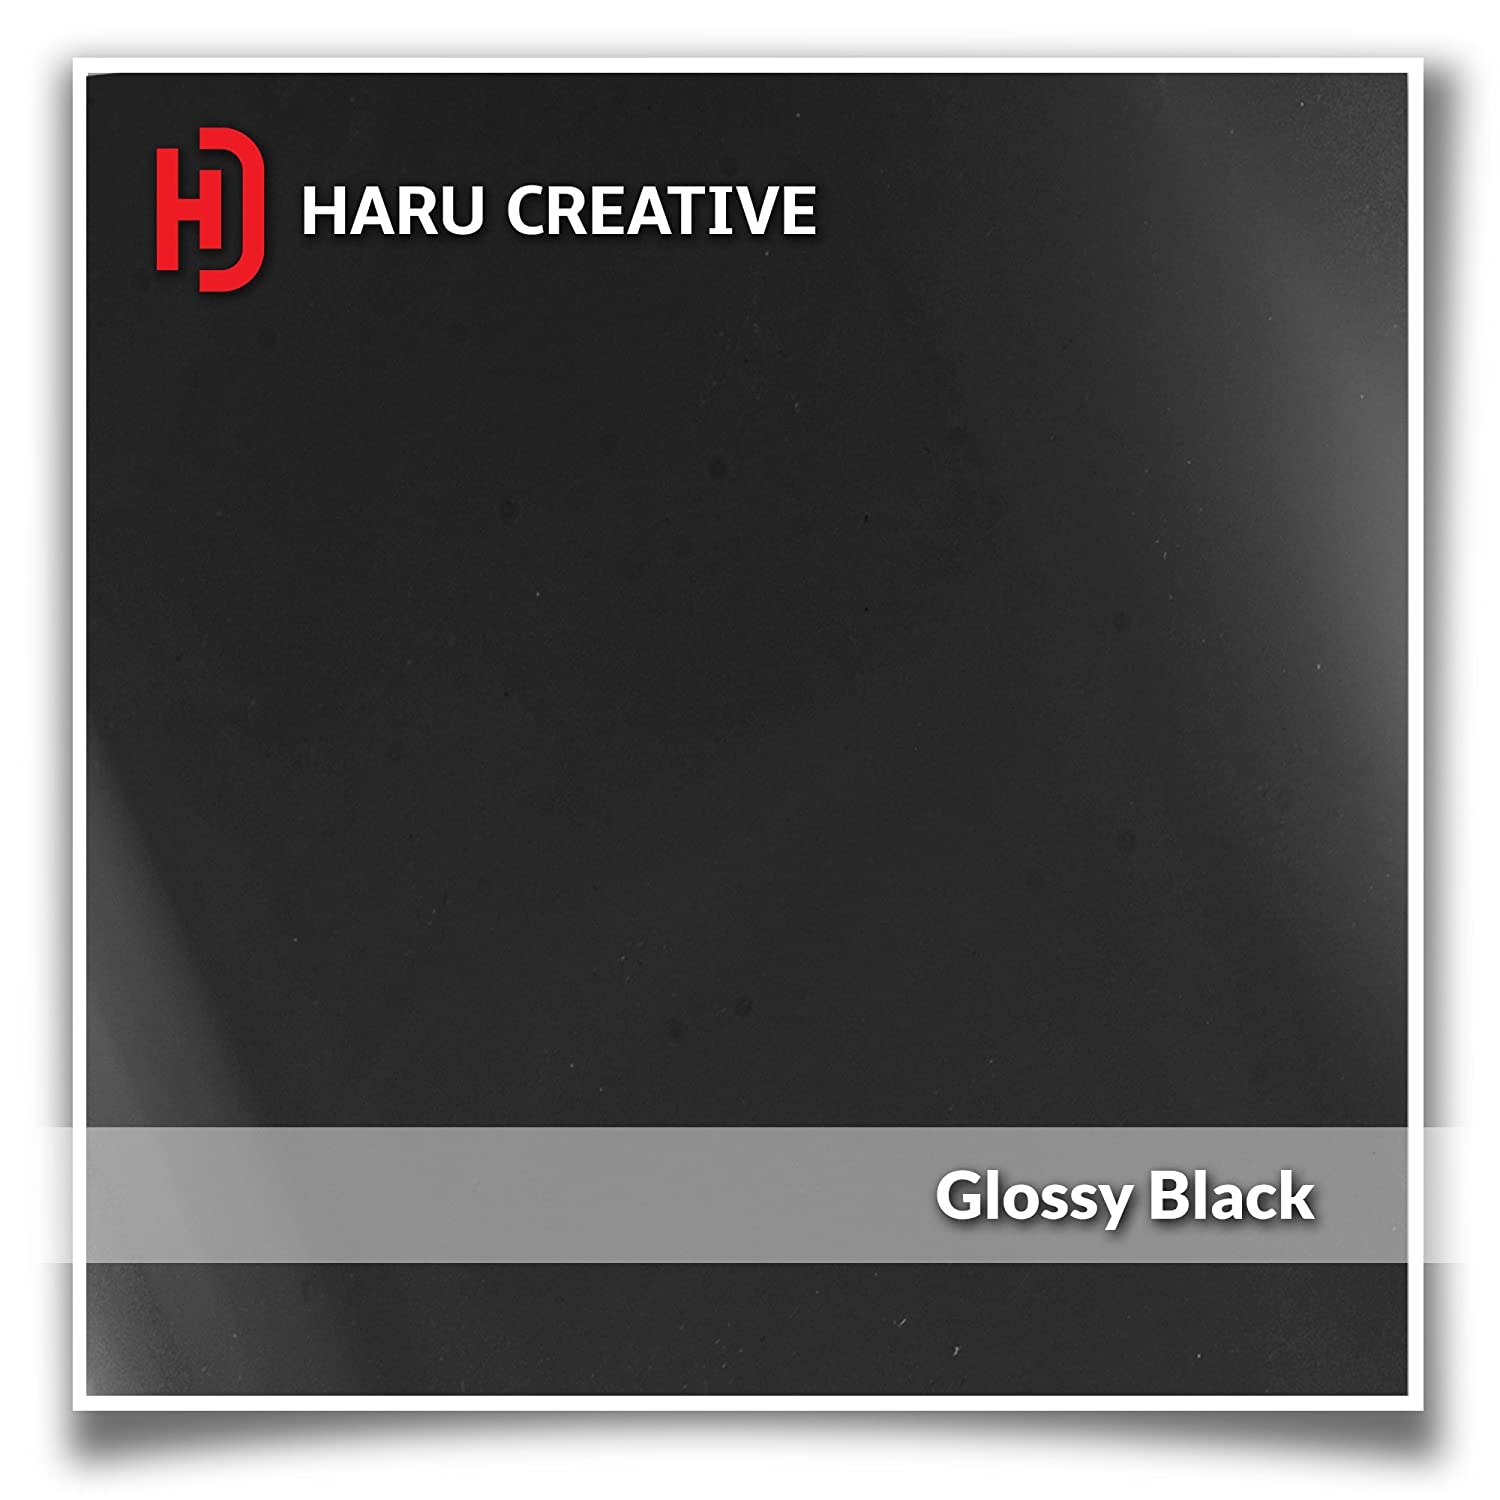 Haru Creative - Gloss Black and White Vinyl Overlay Aftermarket Decal Compatible with and Fits All BMW Emblem Caps for Hood Trunk Wheel Fender Emblem Not Included